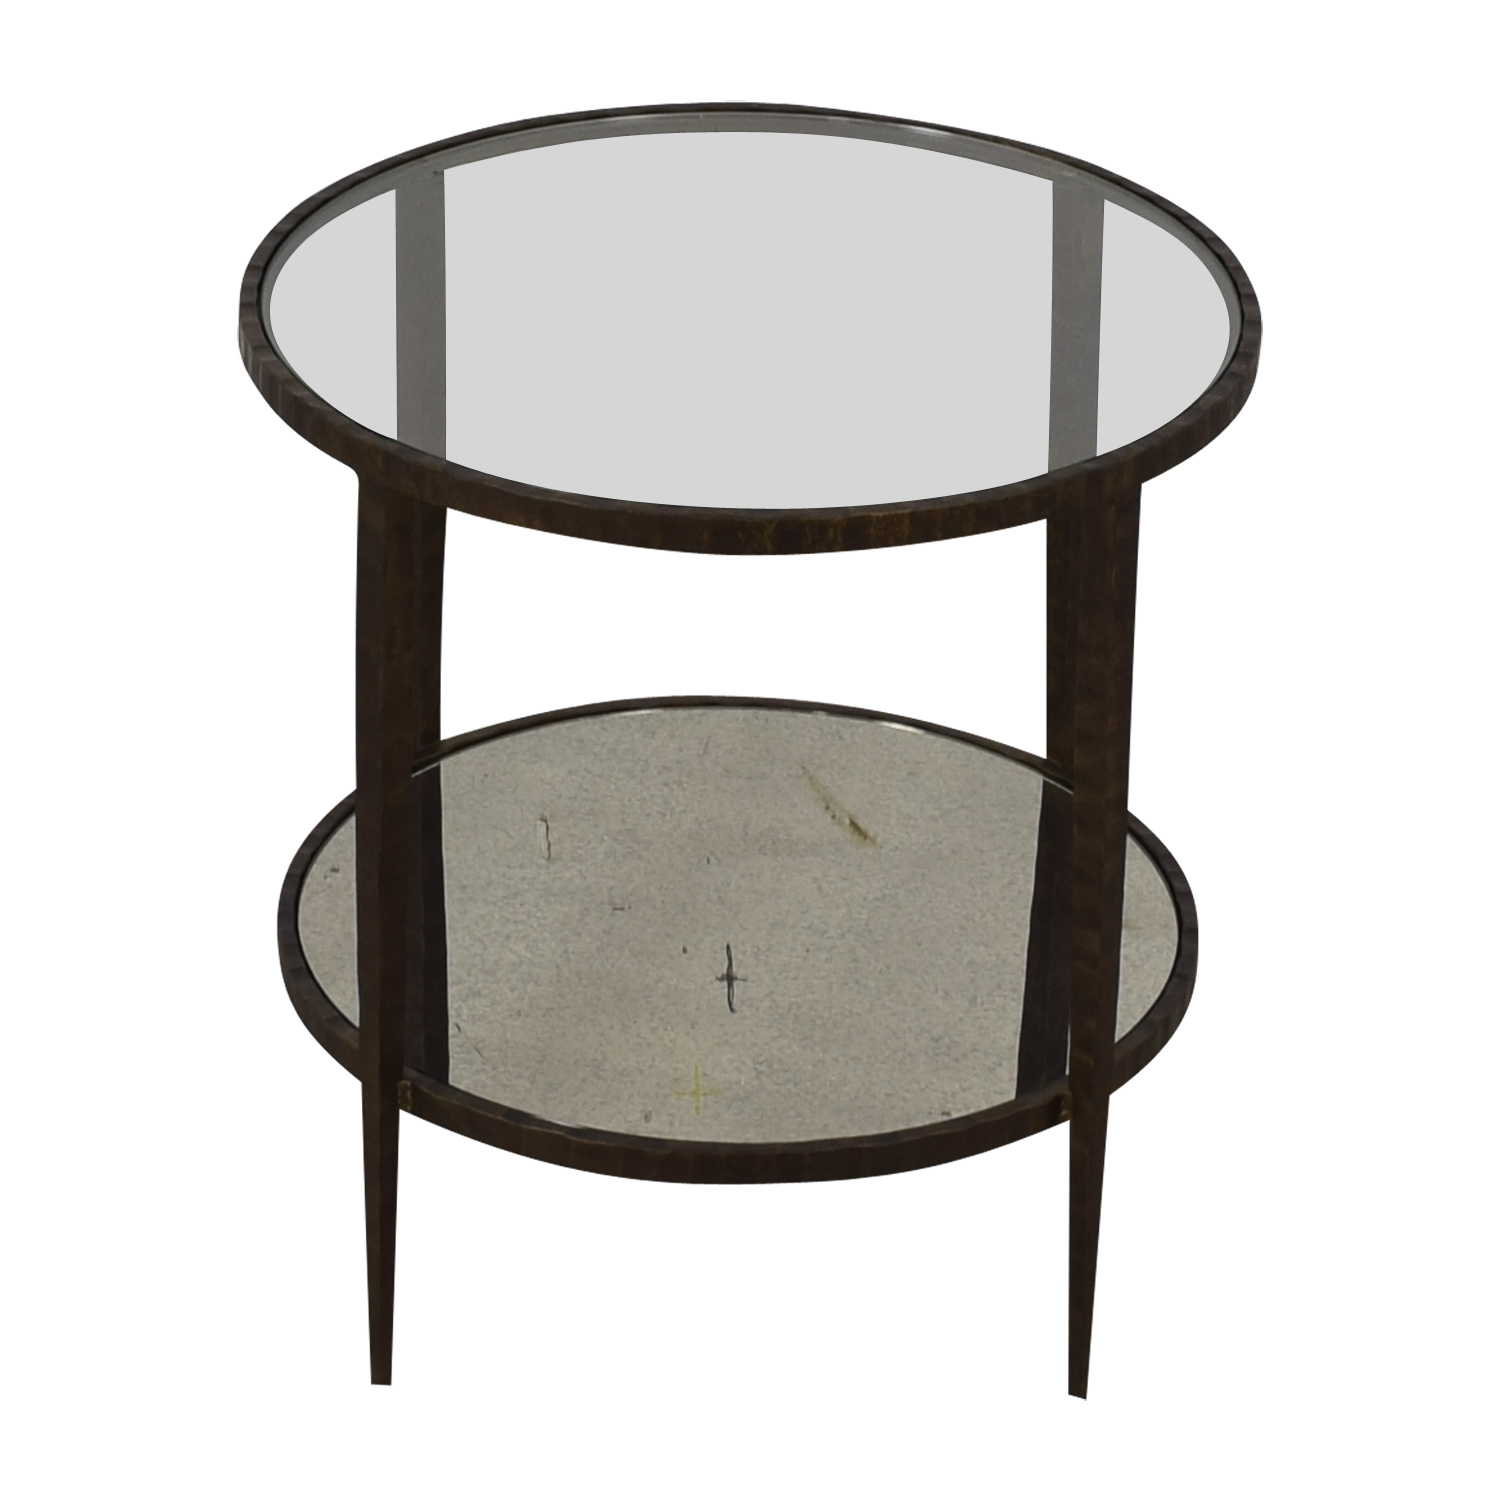 Crate & Barrel Crate & Barrel Clairemont Round Side Table second hand